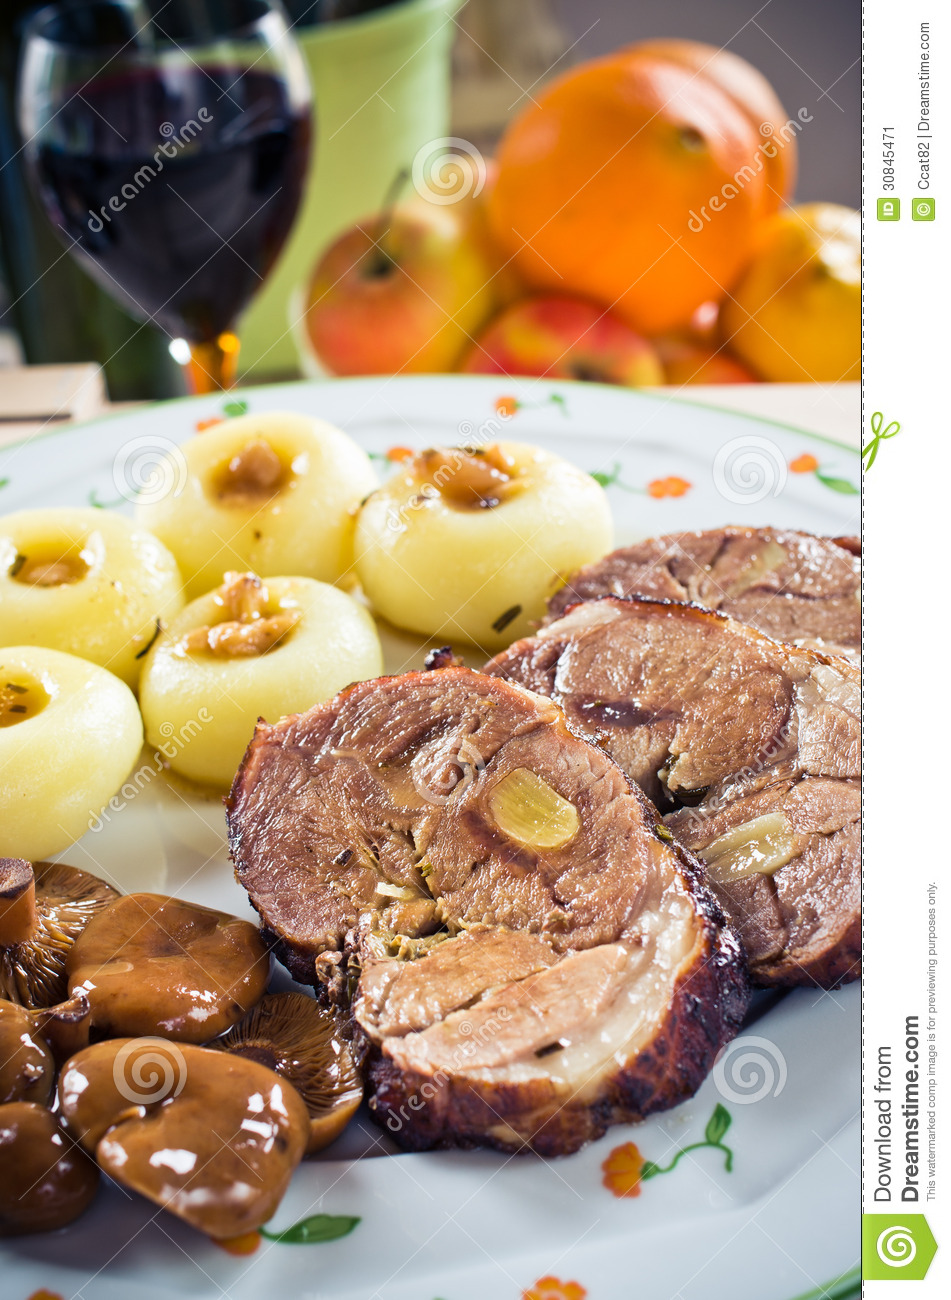 Sliced Lamb Roast With Noodles Stock Image - Image: 30845471